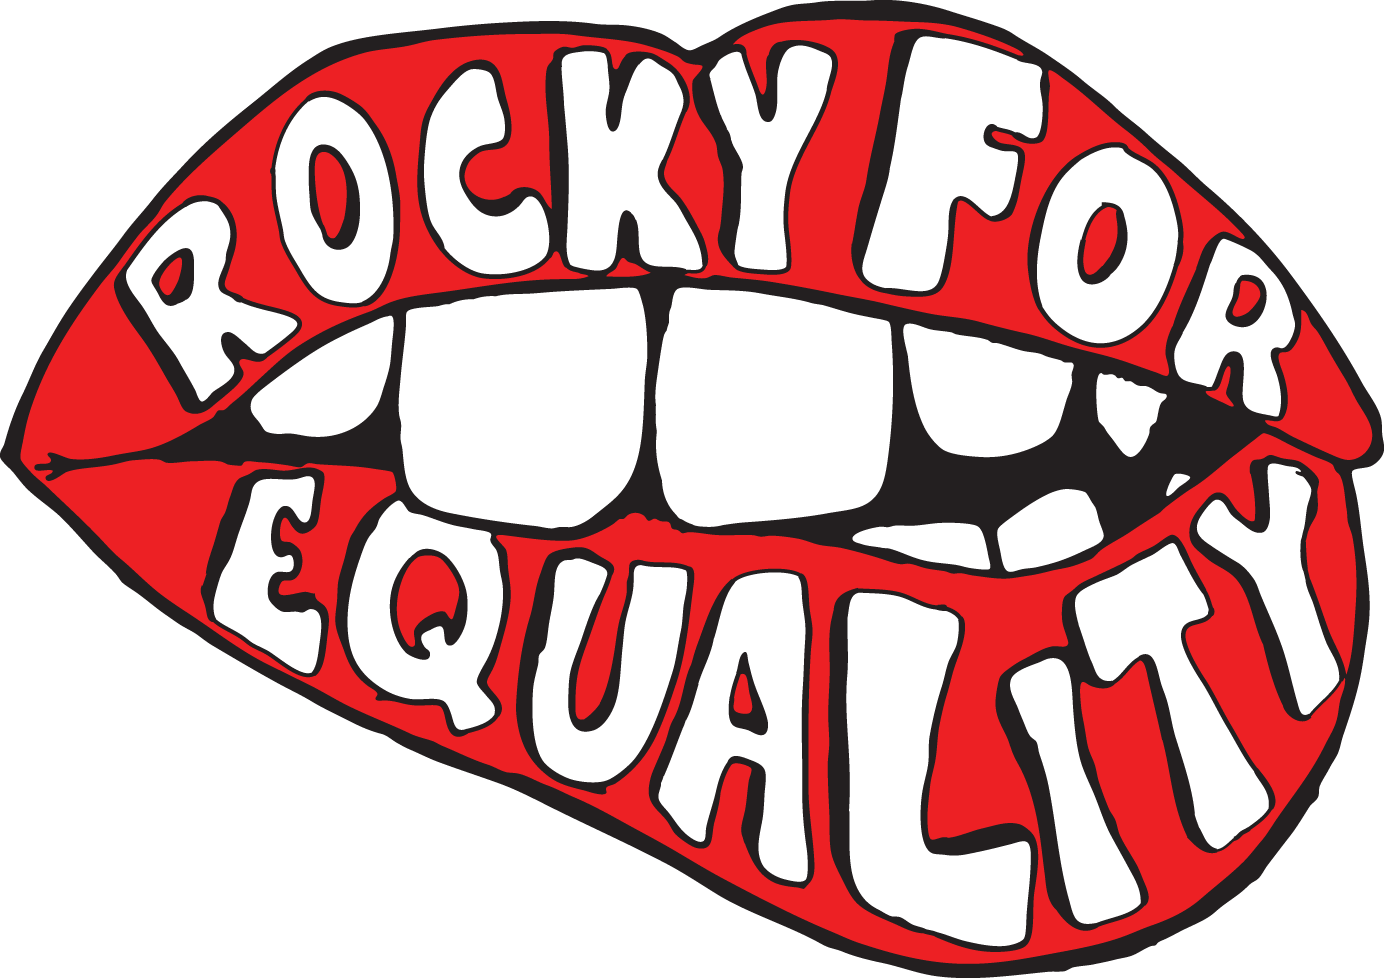 Rocky For Equality